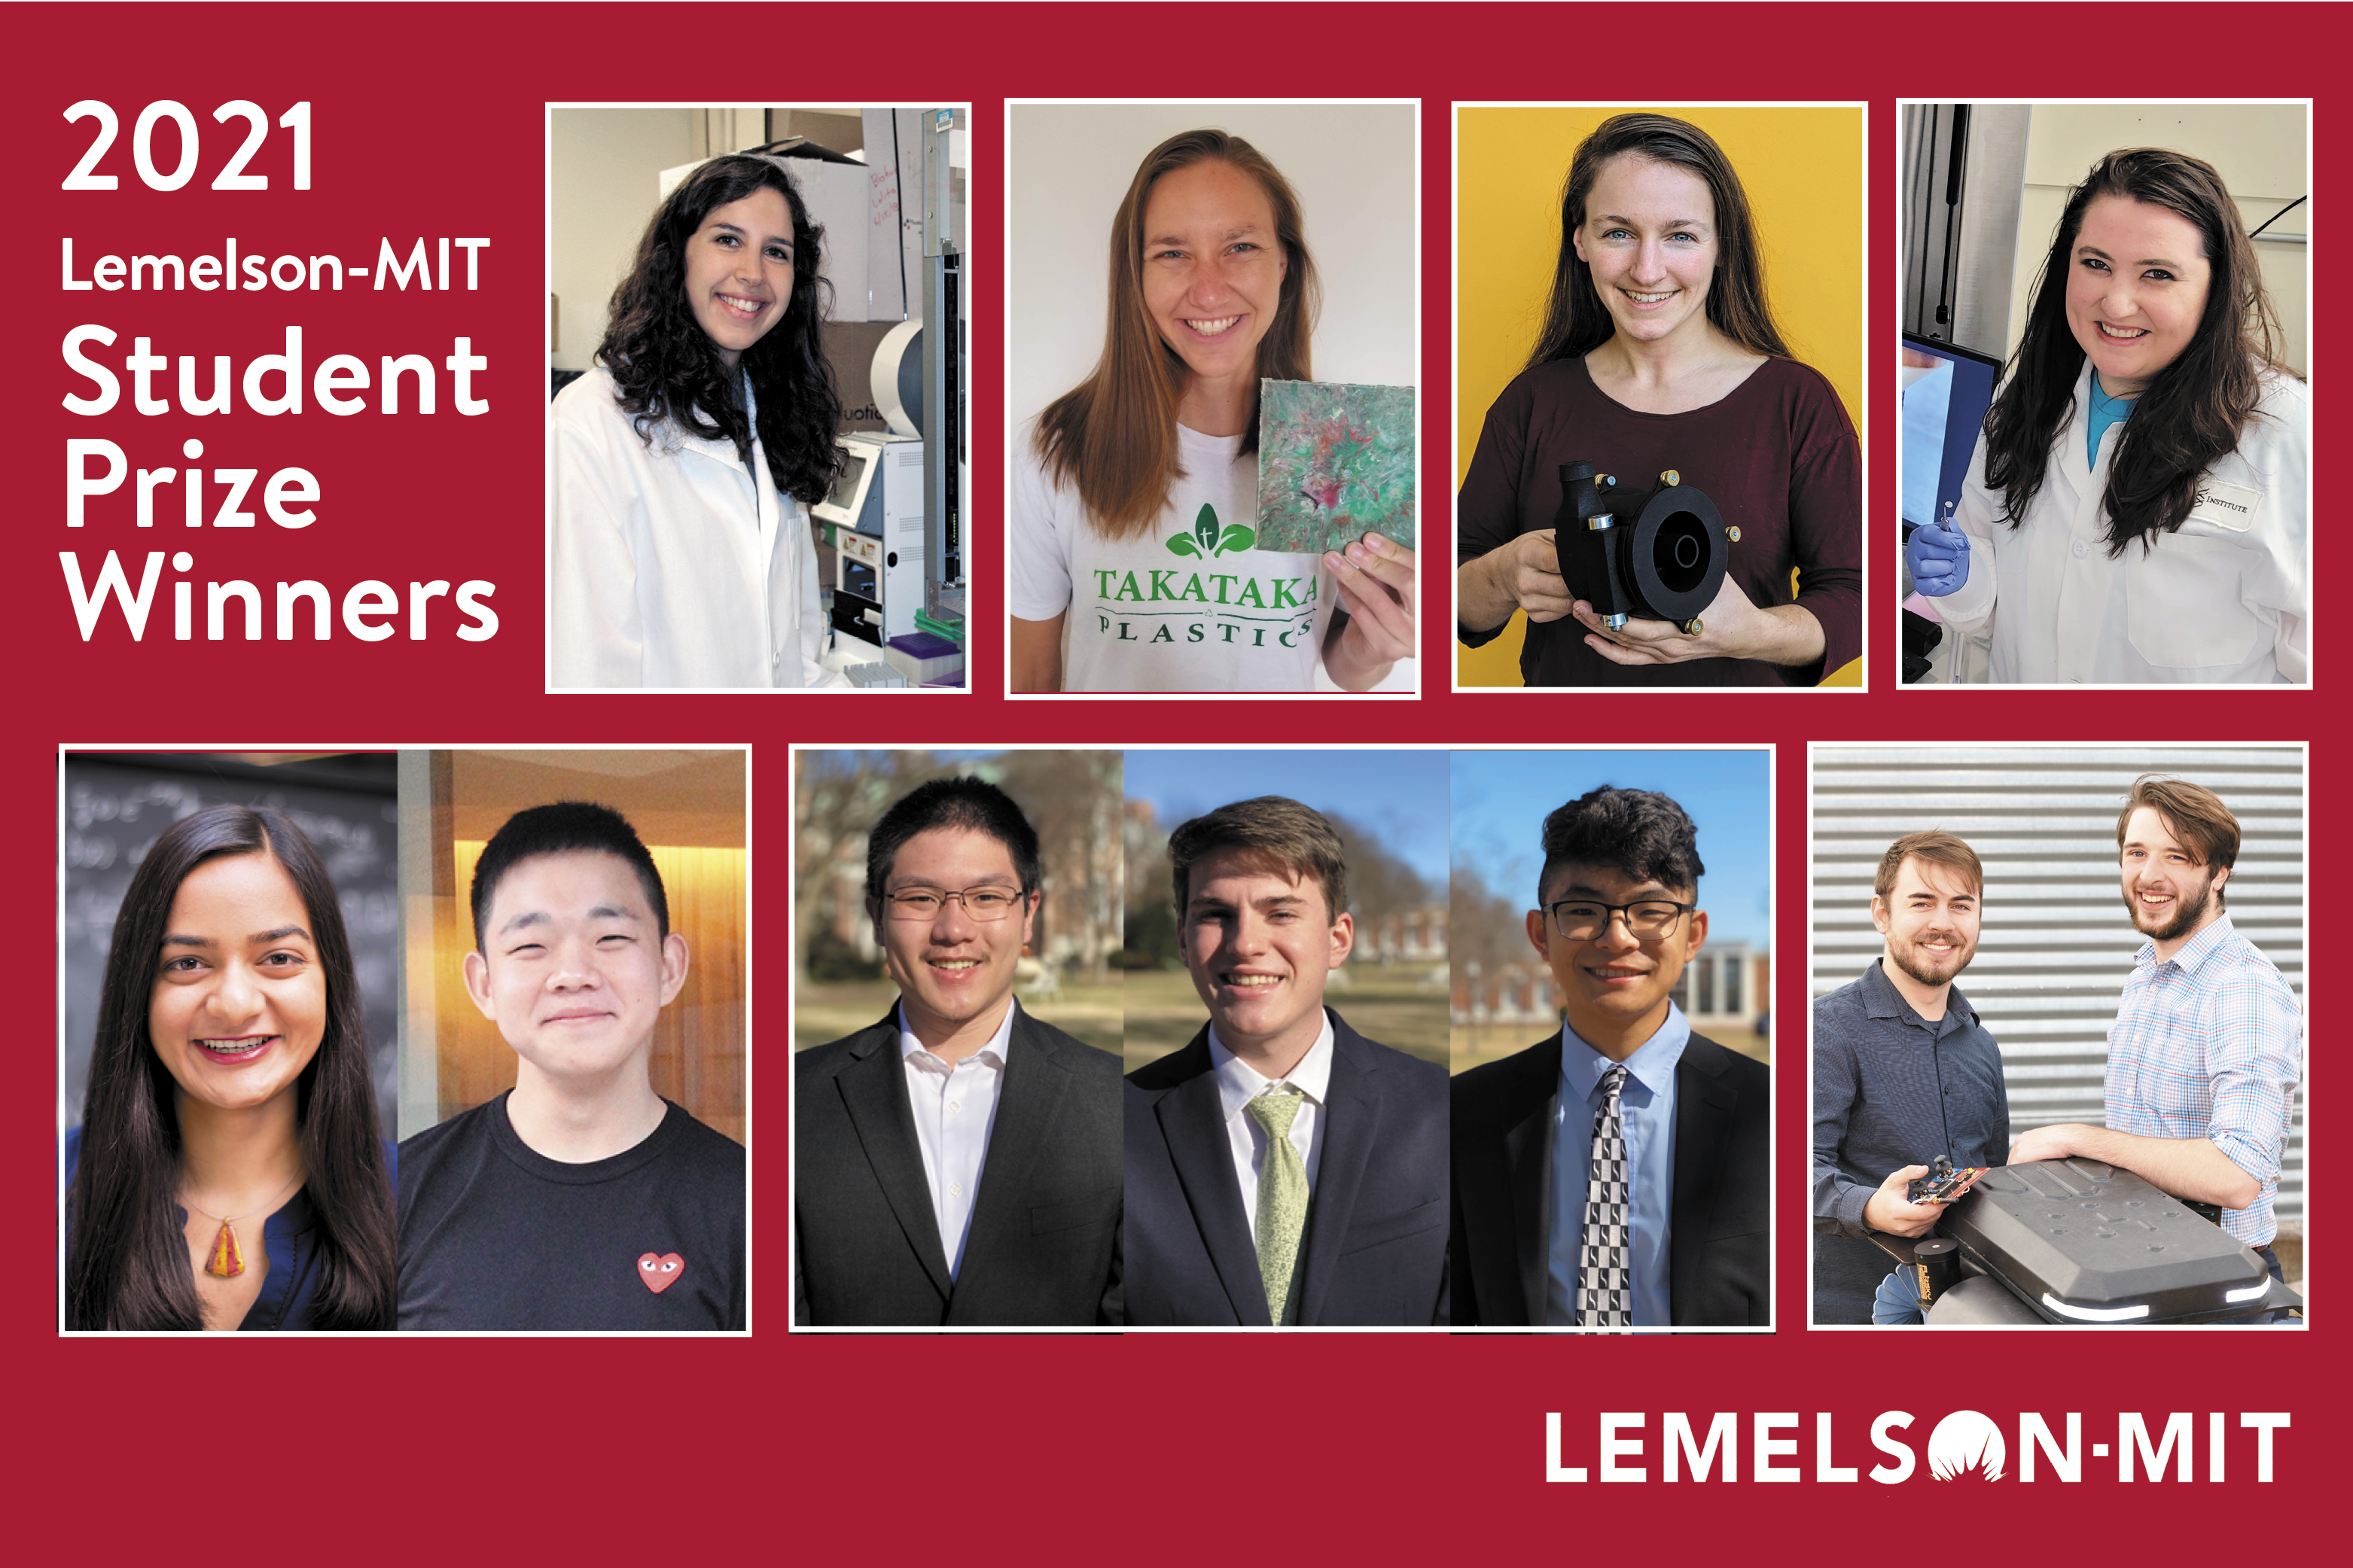 Top collegiate inventors awarded 2021 Lemelson-MIT Student Prize